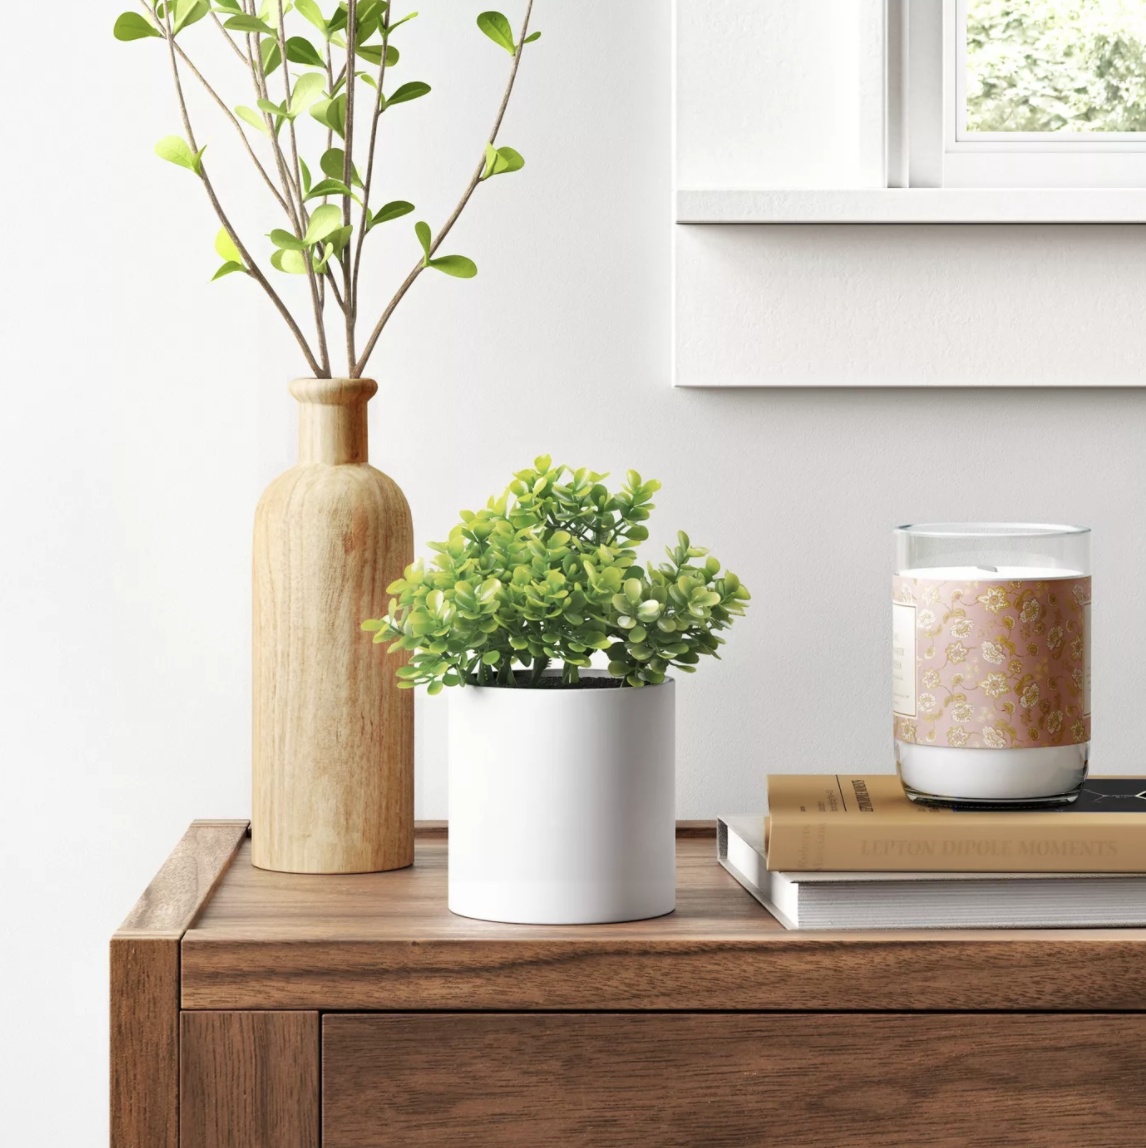 the faux plant in a white pot